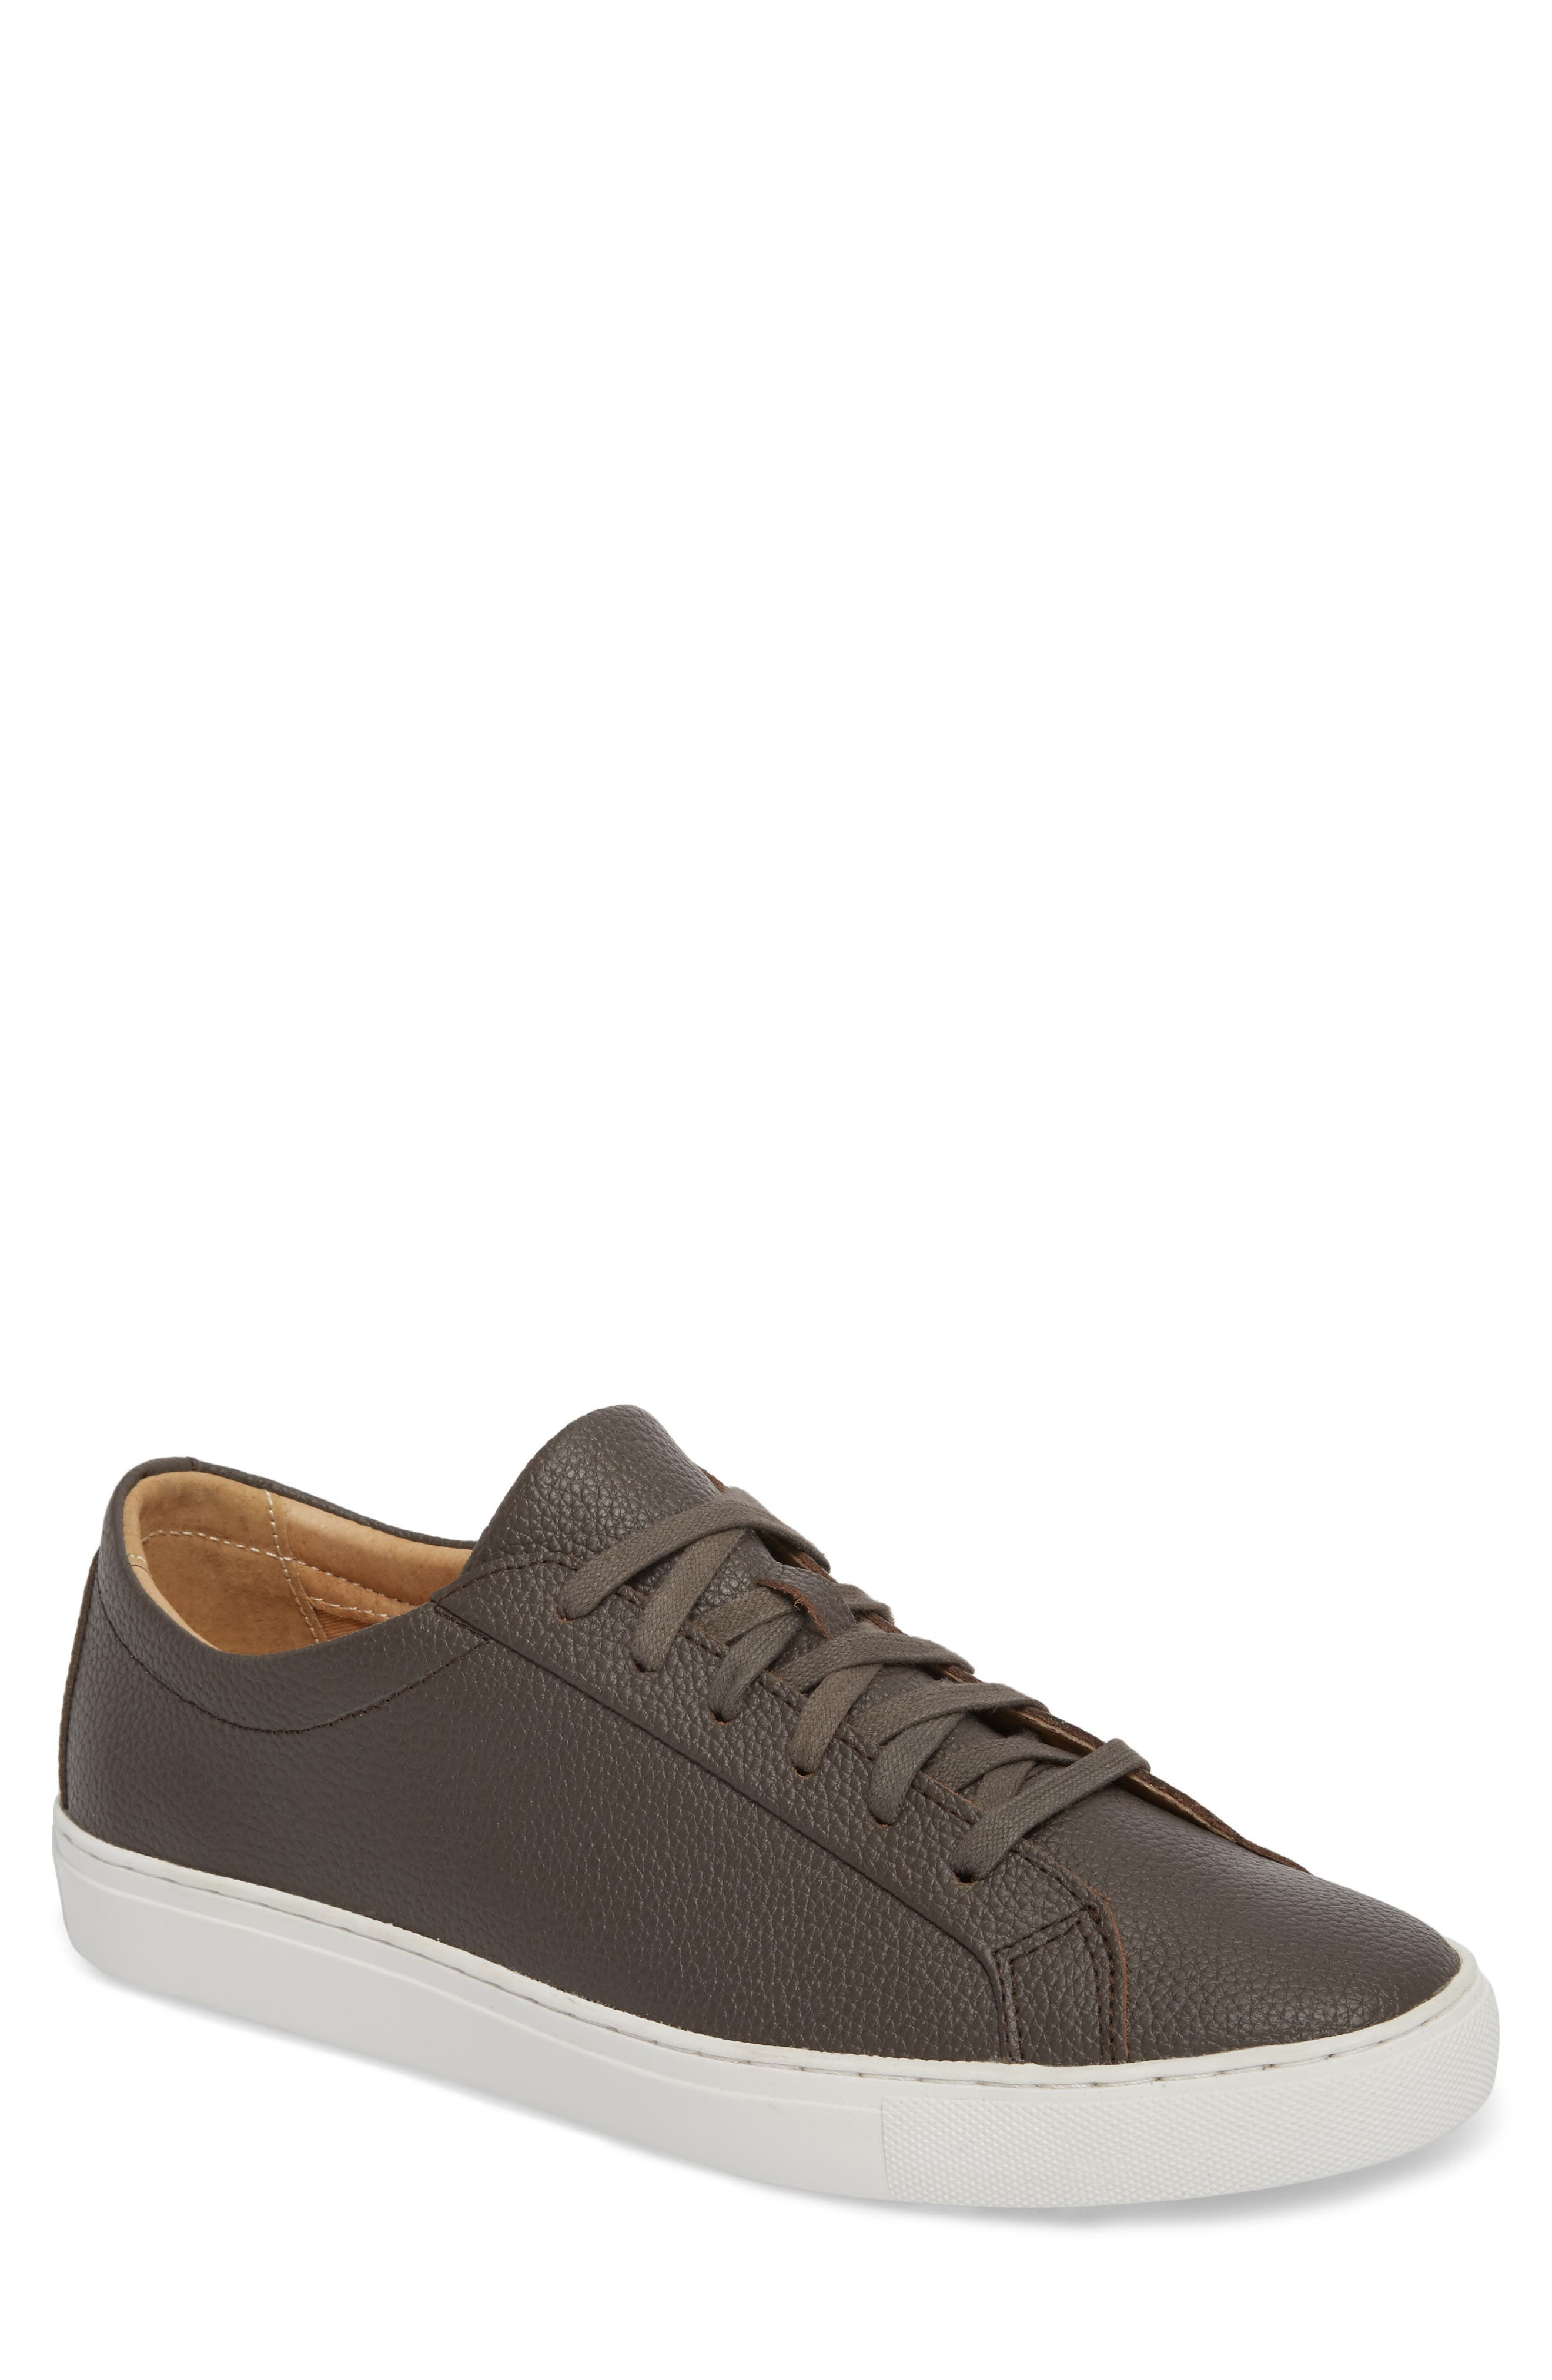 Kennedy Low Top Sneaker,                             Main thumbnail 1, color,                             FALCON LEATHER